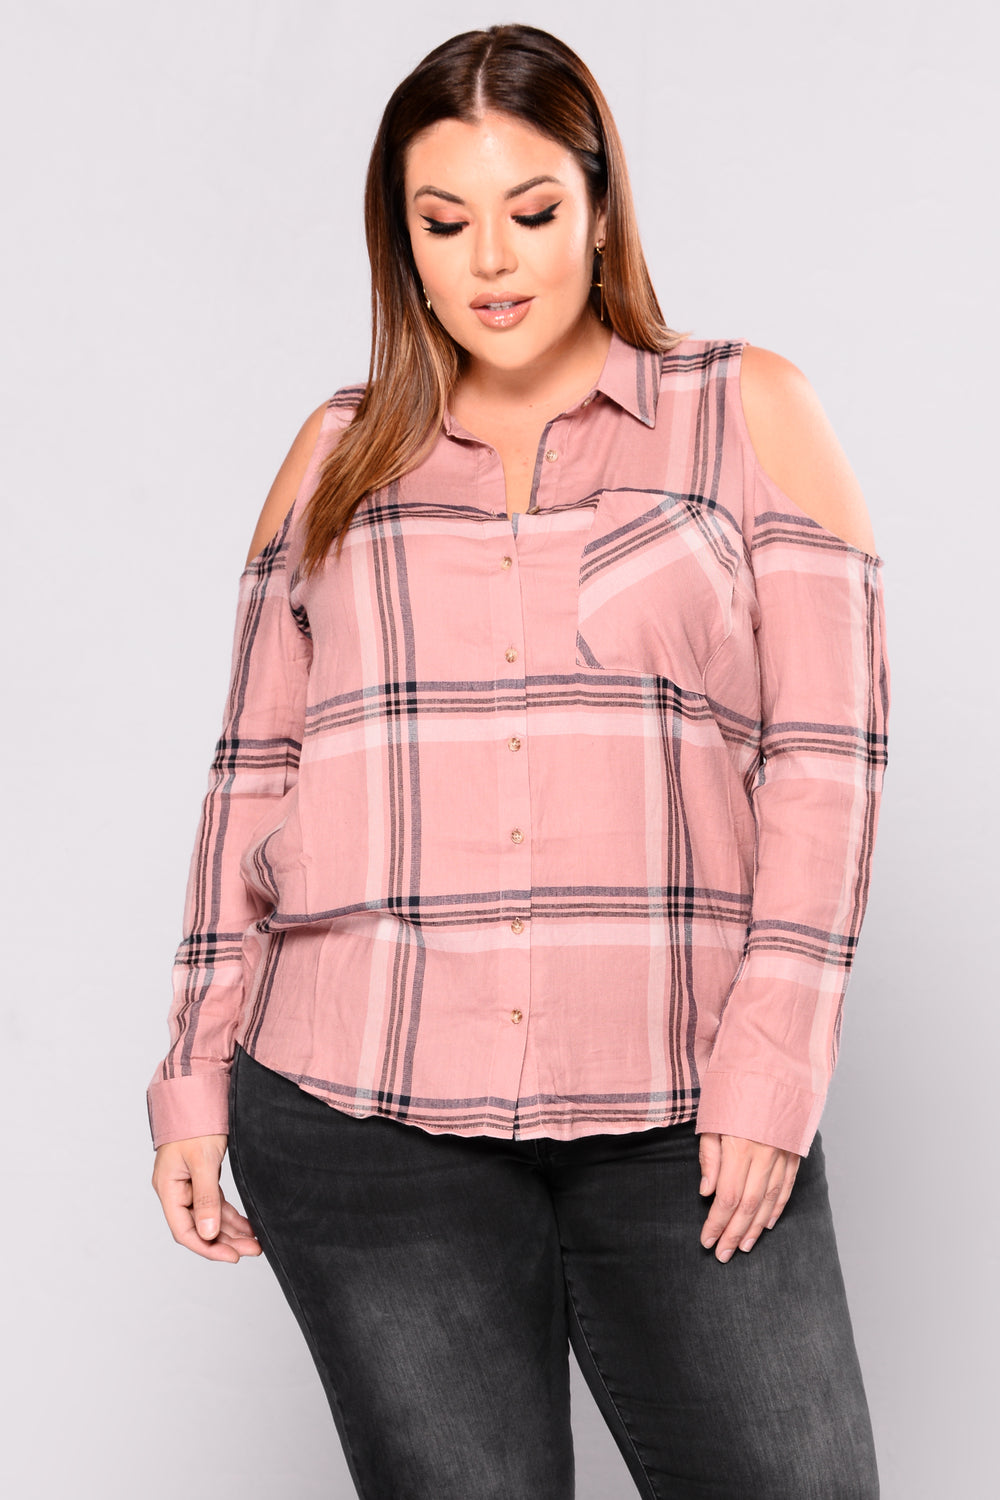 Cool To The Bone Top - Mauve